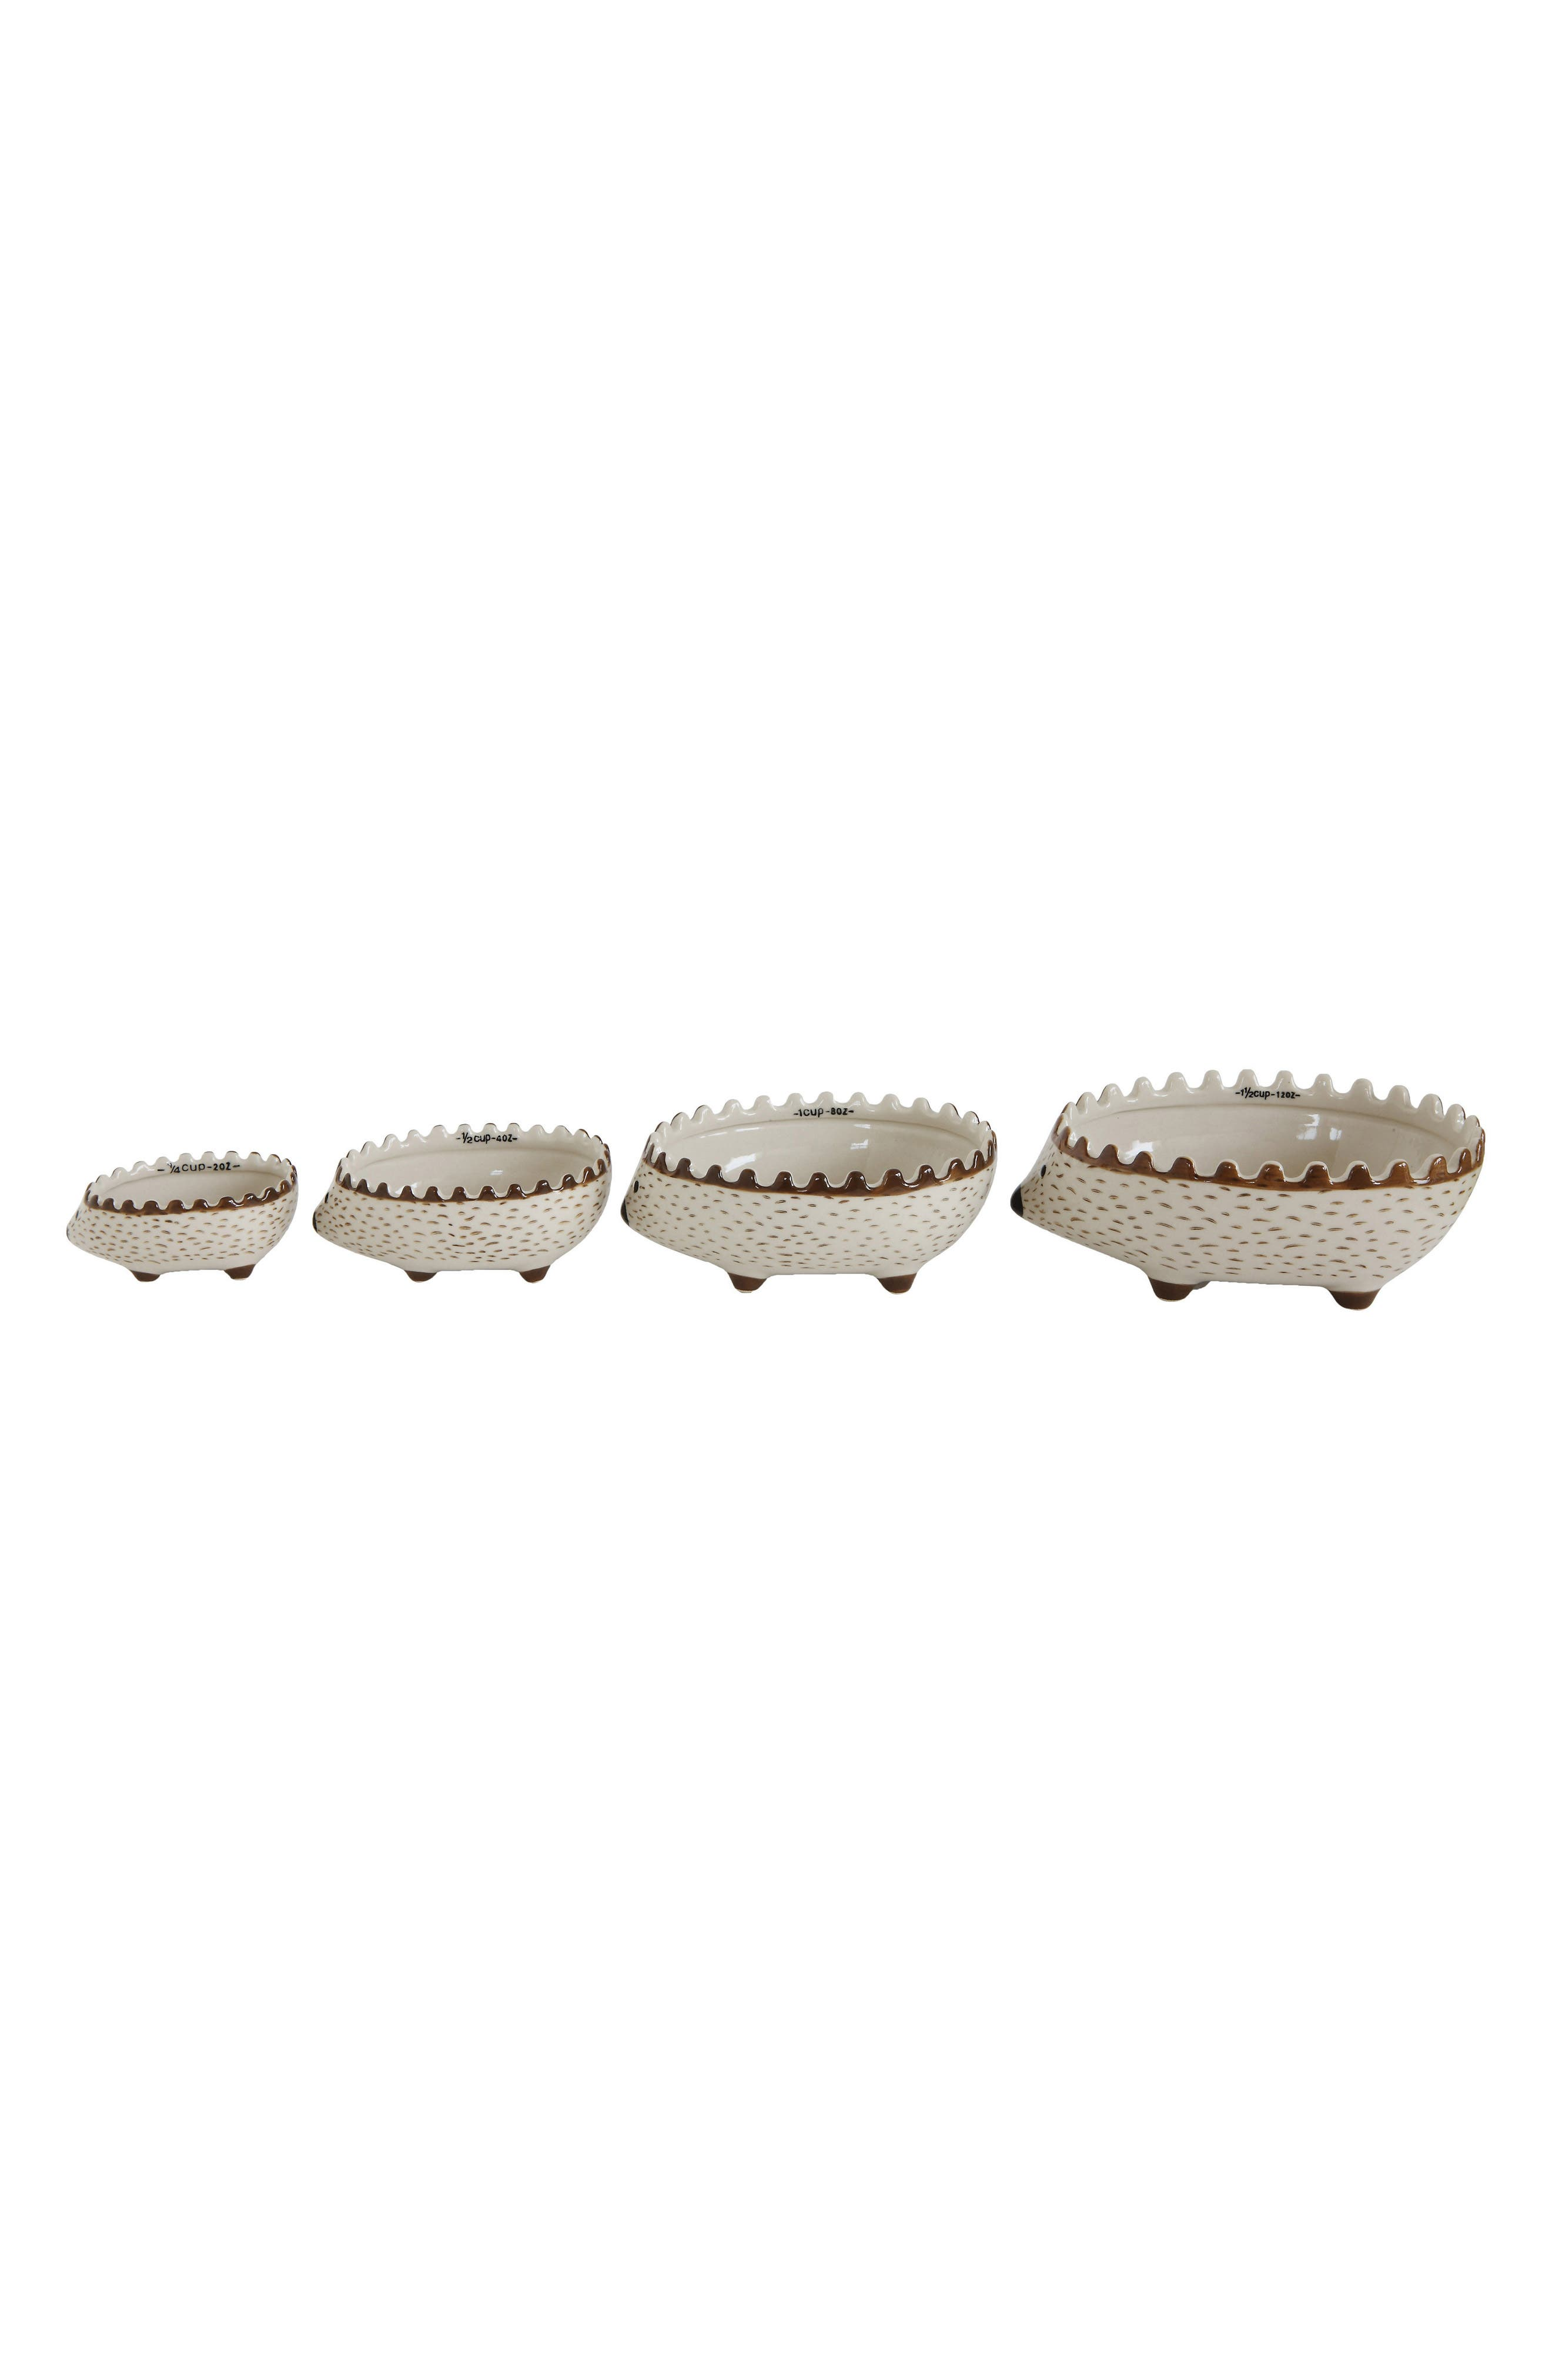 Set of 4 Hedgehog Measuring Cups,                             Main thumbnail 1, color,                             White